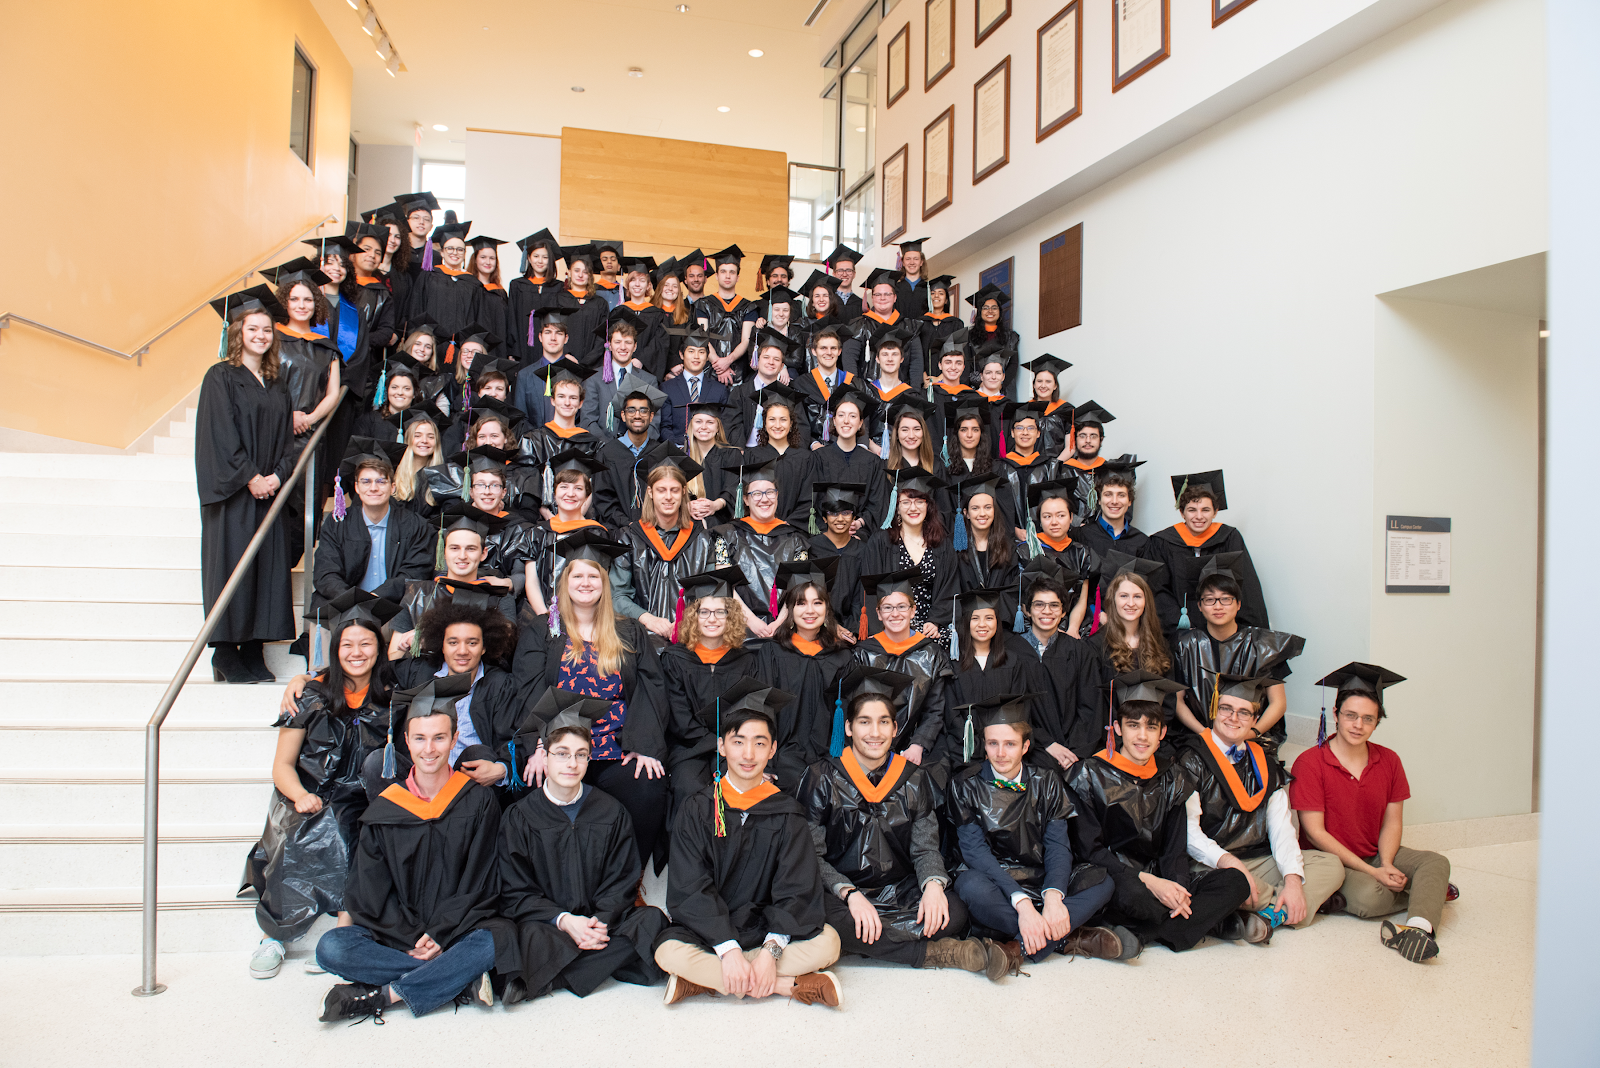 A group photo of people wearing graduation caps and gowns, some of which appear to be homemade.